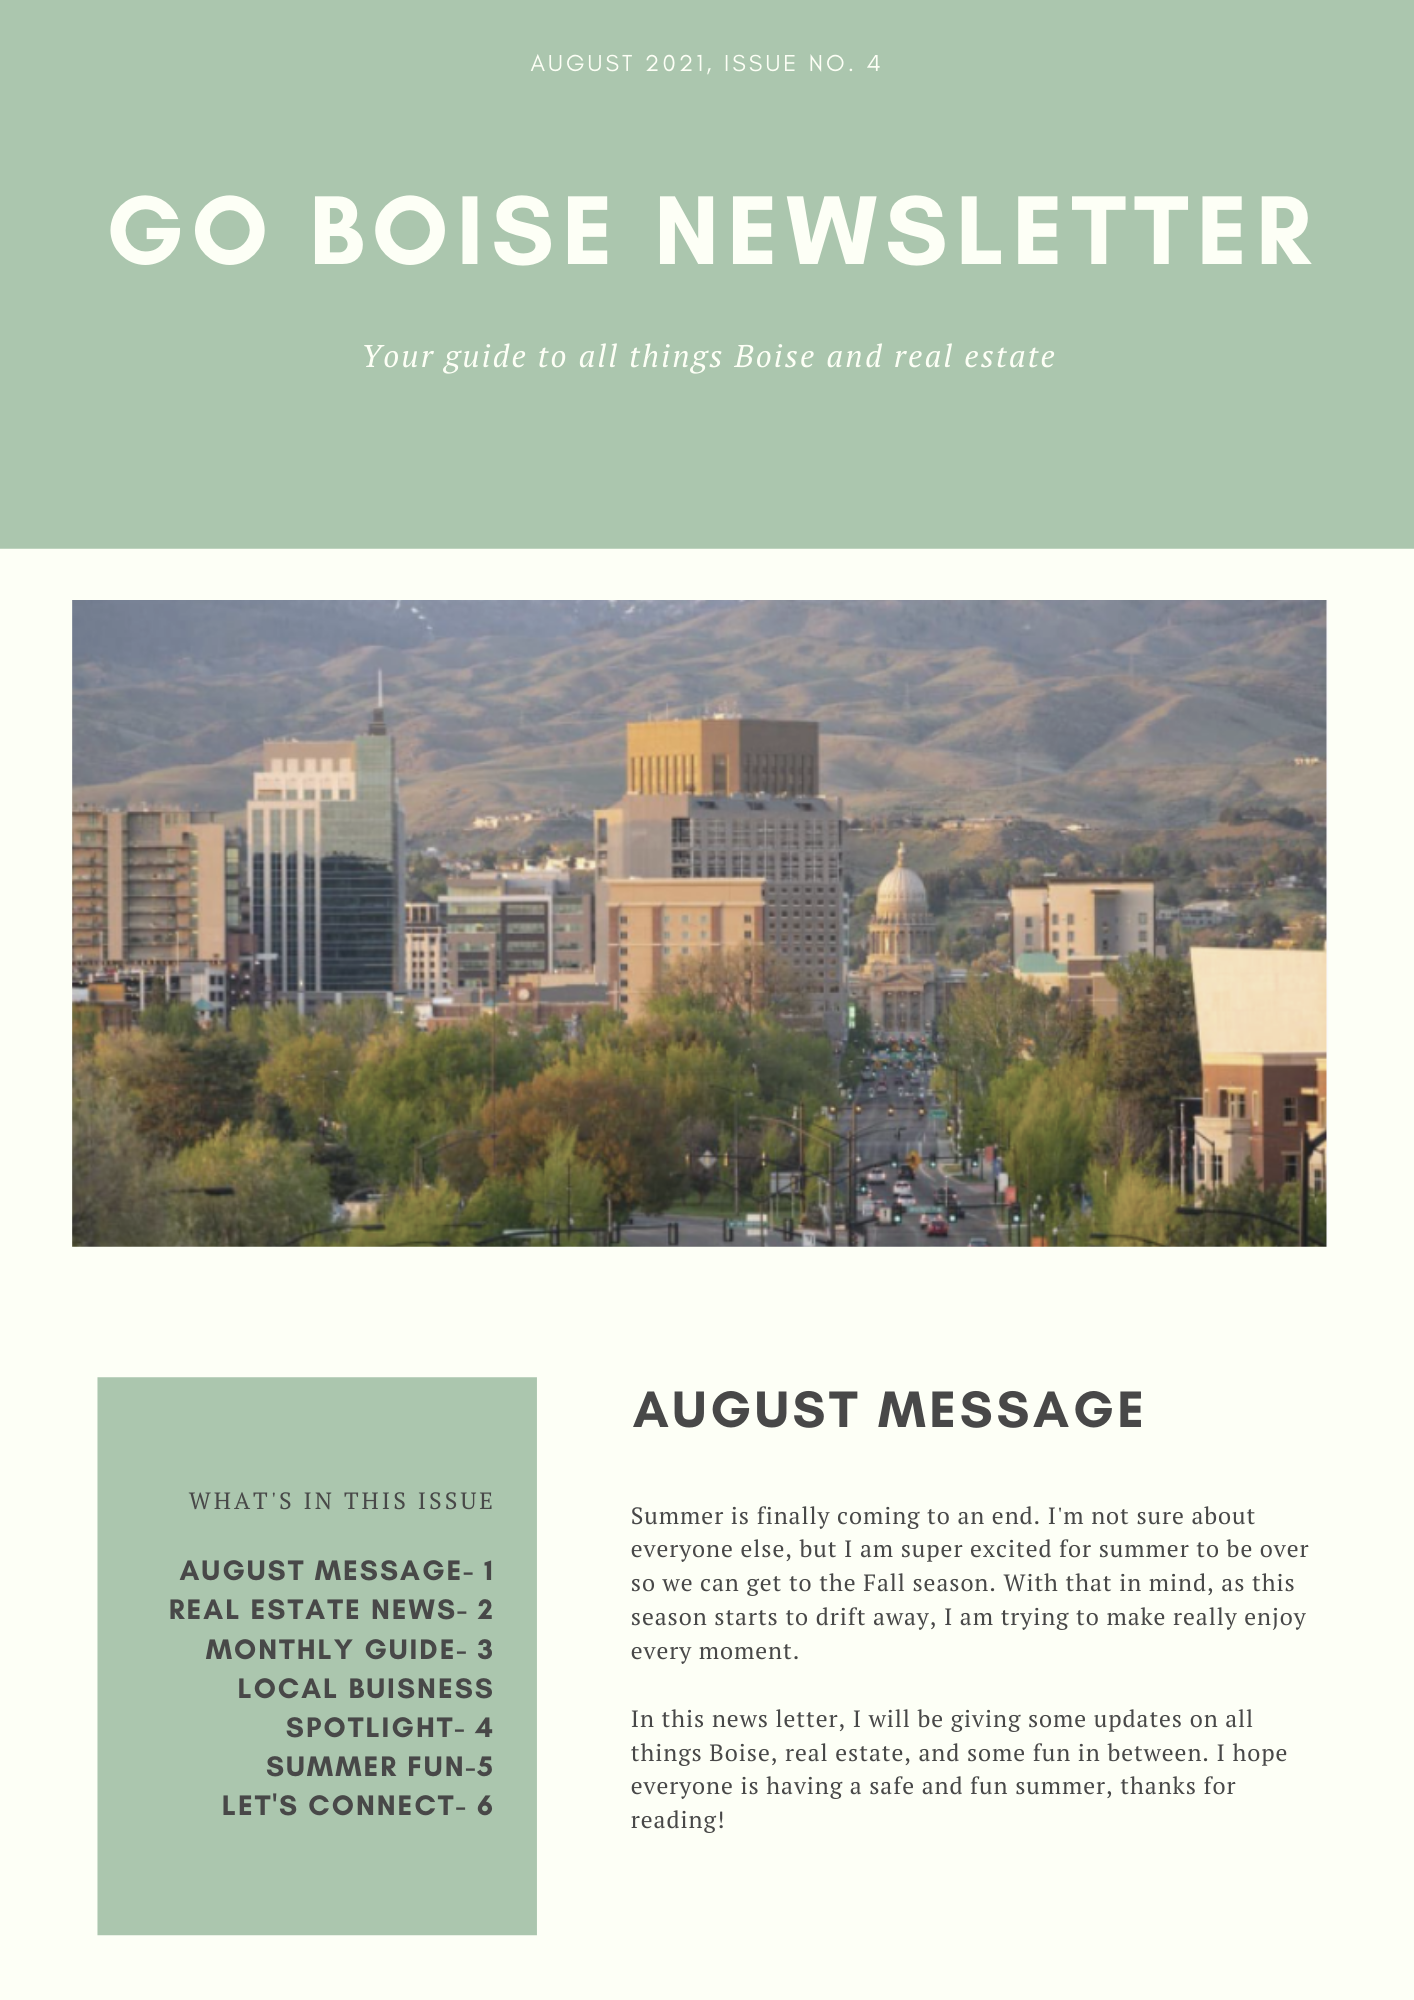 AUG NEWSLETTER 1.png